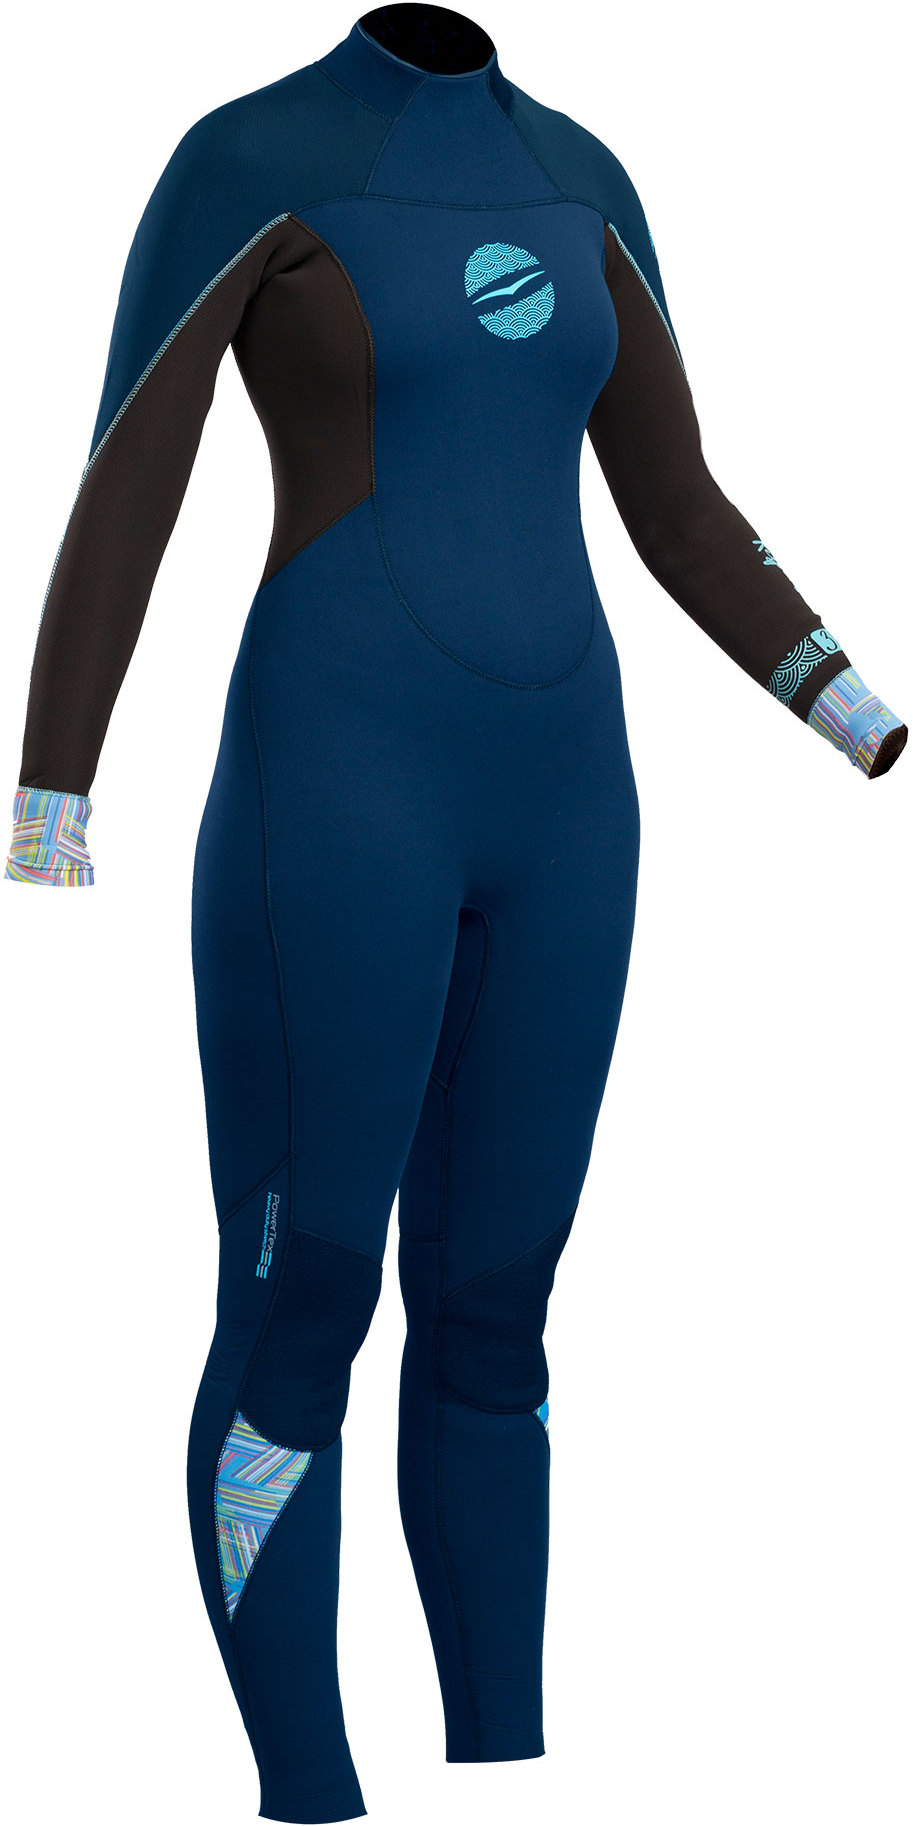 2019 Gul Response Womens 4/3mm GBS Back Zip Wetsuit Navy / Black RE1248-B4